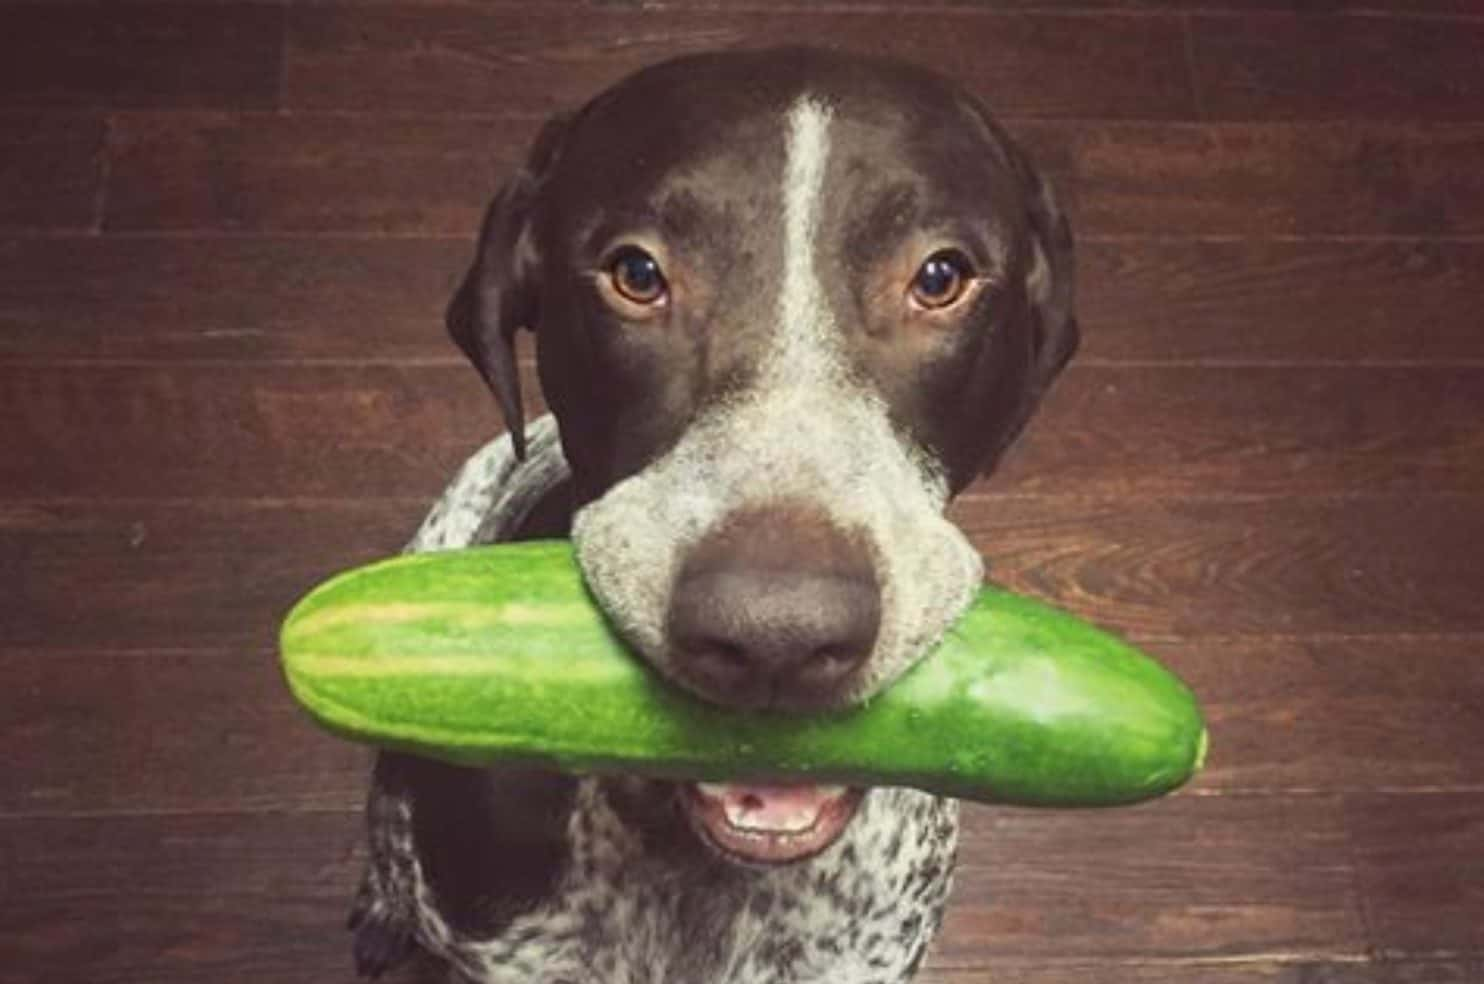 There are certain risks and side effects when feeding dogs cucumbers.